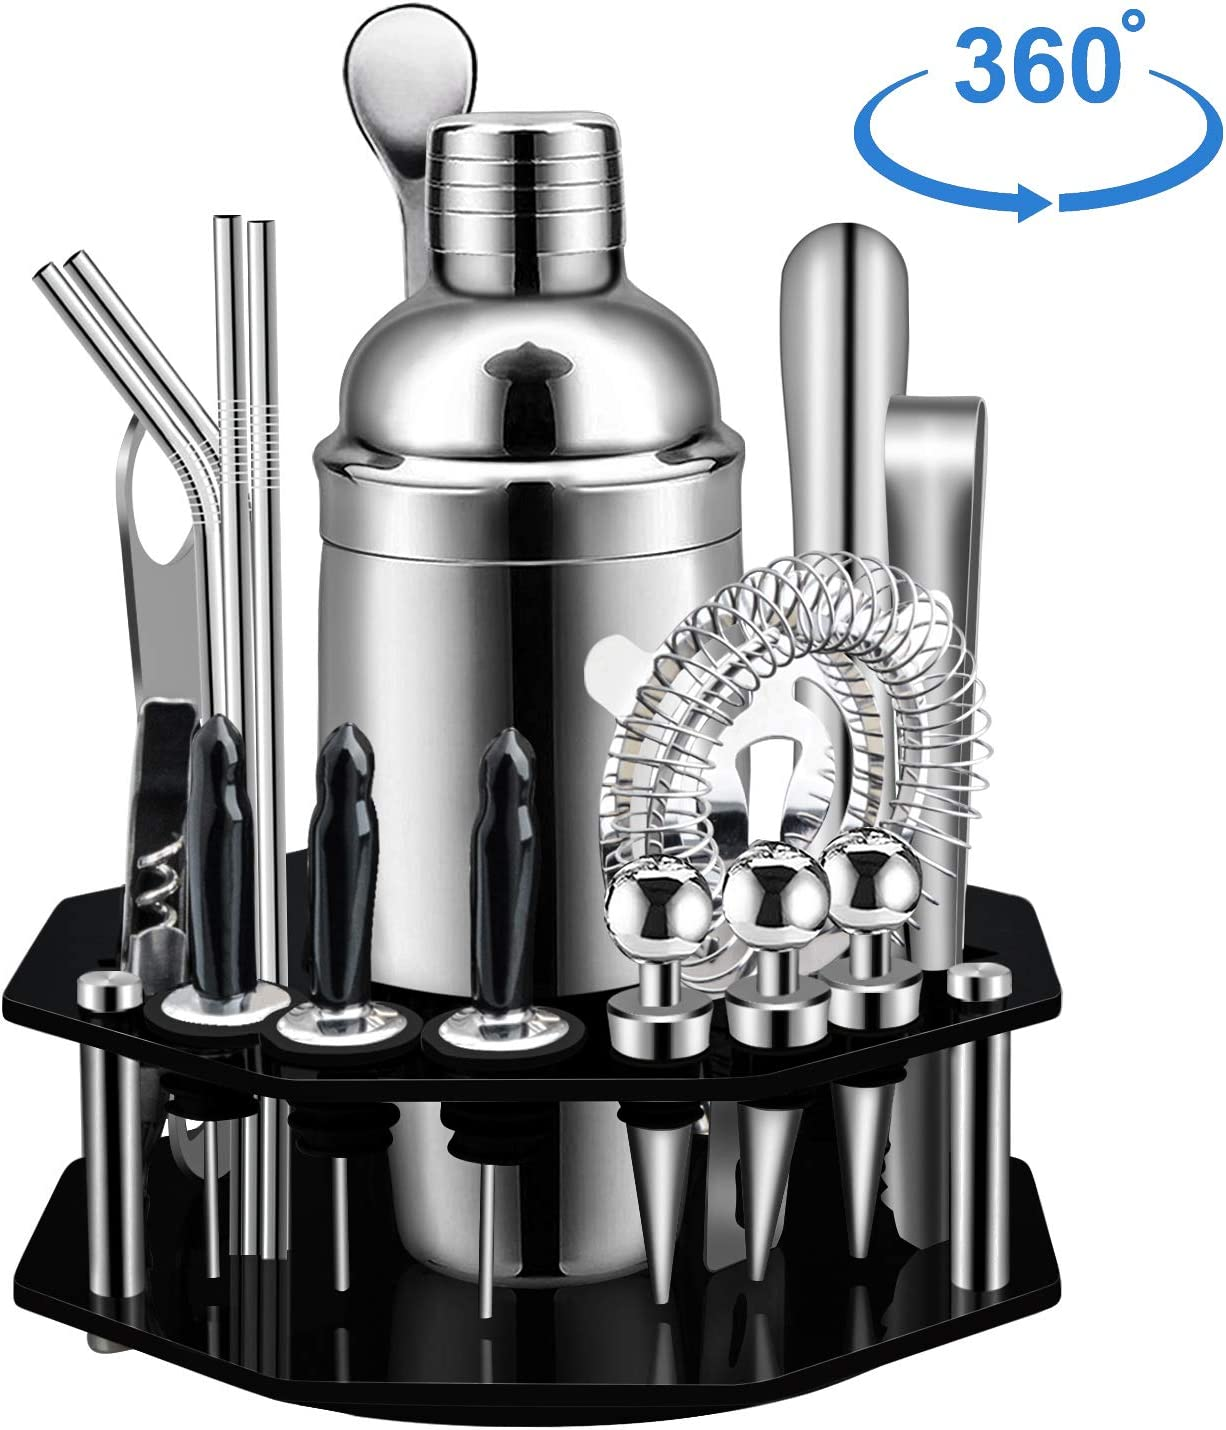 X-cosrack Bar Set,19-Piece Cocktail Shaker Set with Octagon Rotating Display Stand,SS304 Stainless Steel Premium Bartender Kit for Home,Bar,Party,Pefect Gift Choice